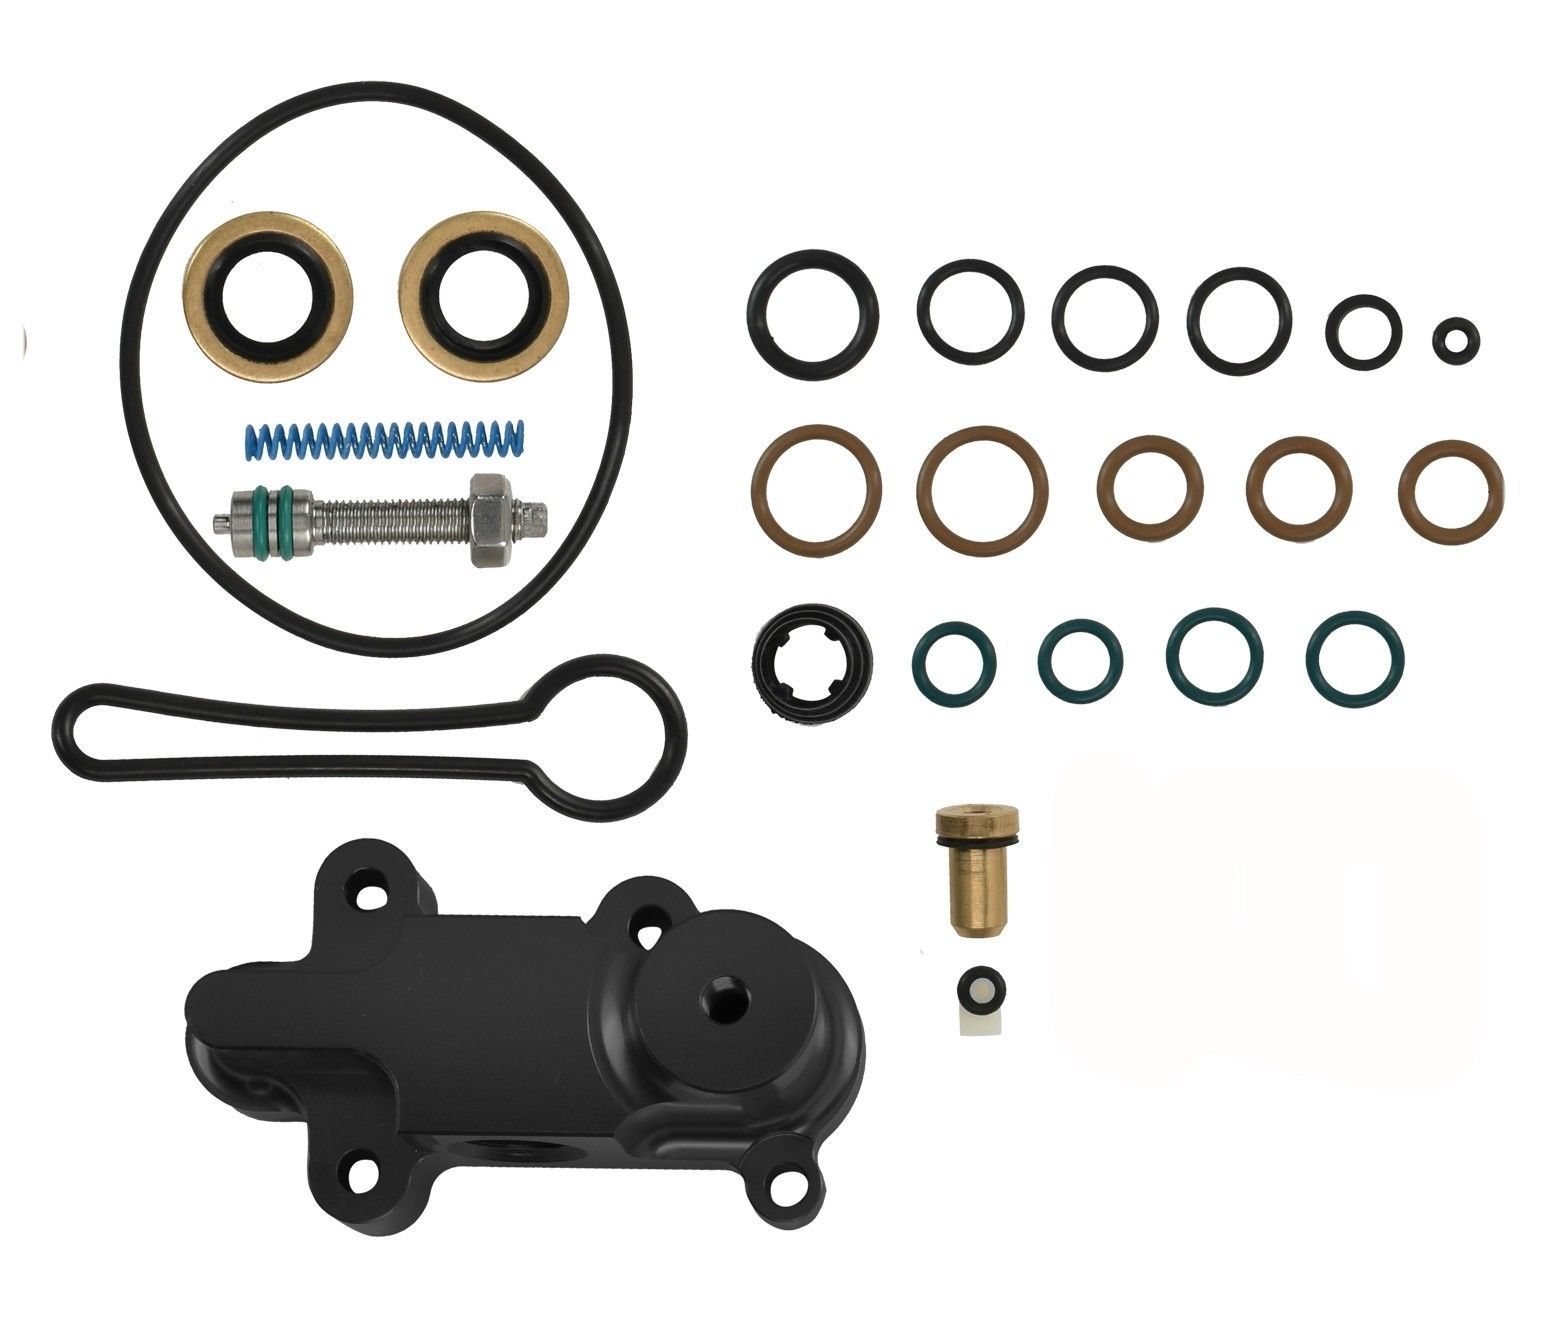 TrackTech Billet Adjustable Fuel Pressure Regulator Housing Kit Black for 6.0L Powerstroke